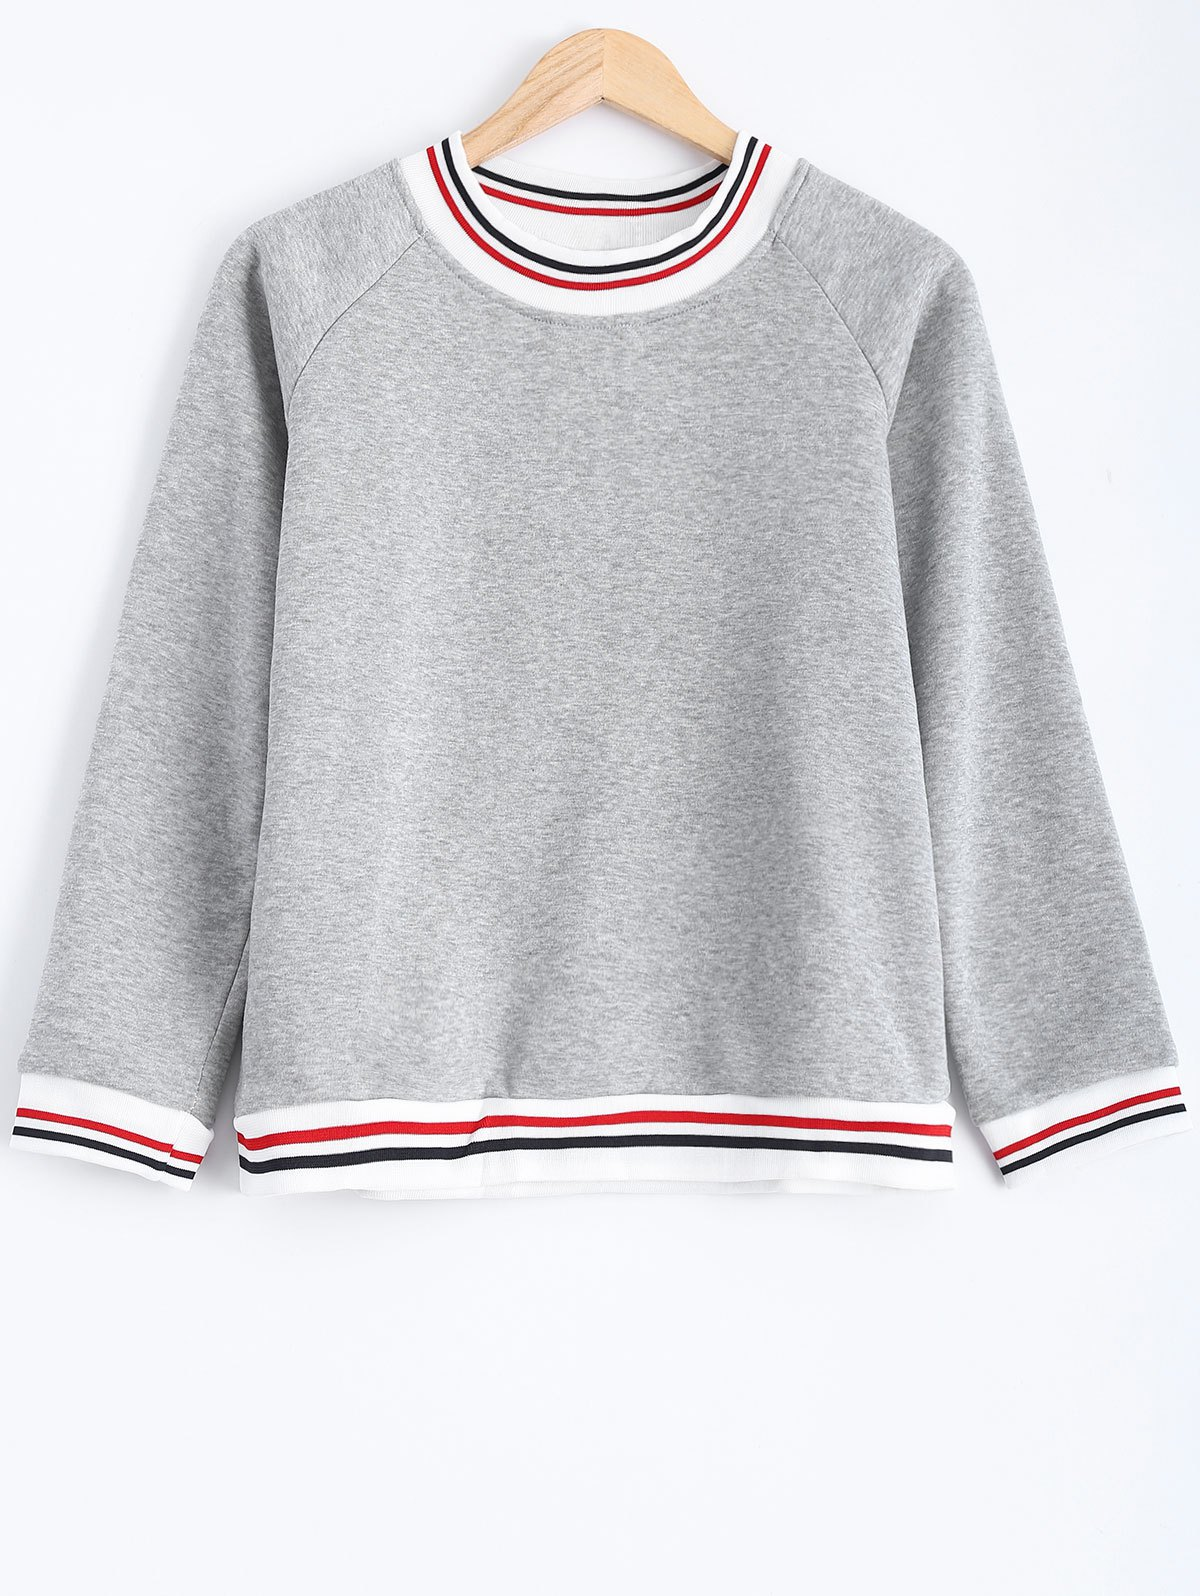 Striped Flocking Loose-Fitting Sweatshirt - GRAY L